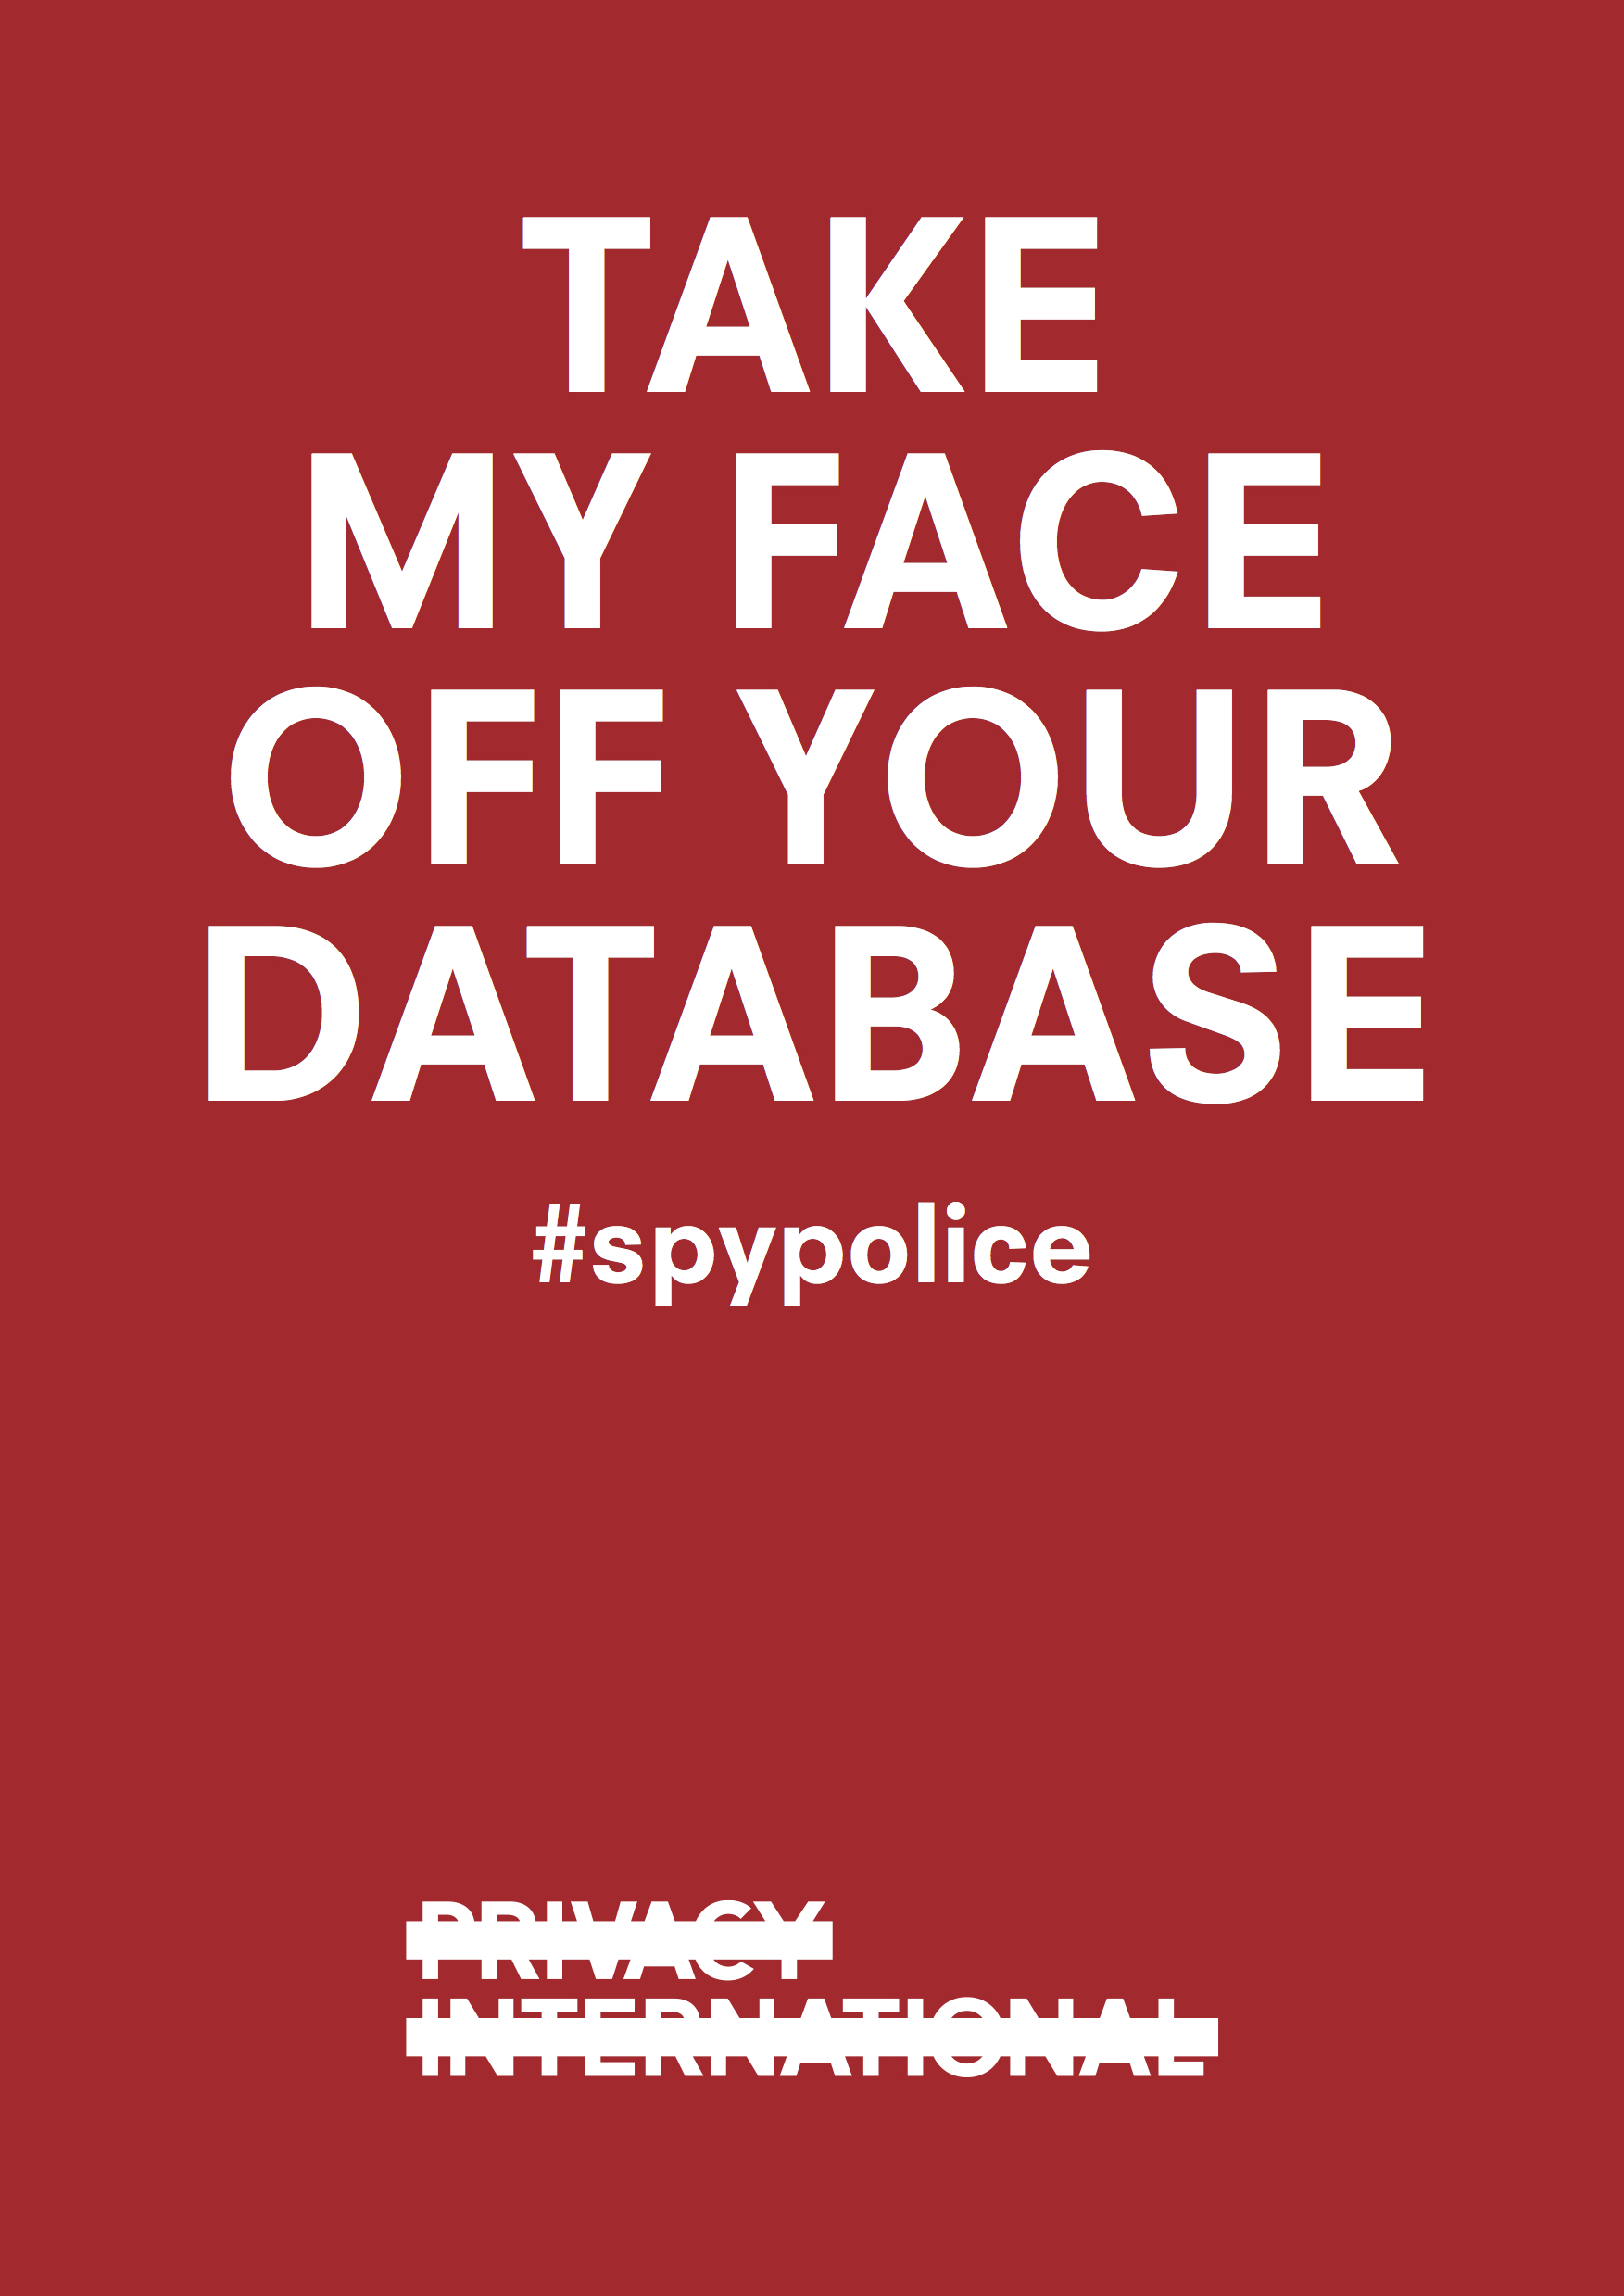 Take my face off your database poster